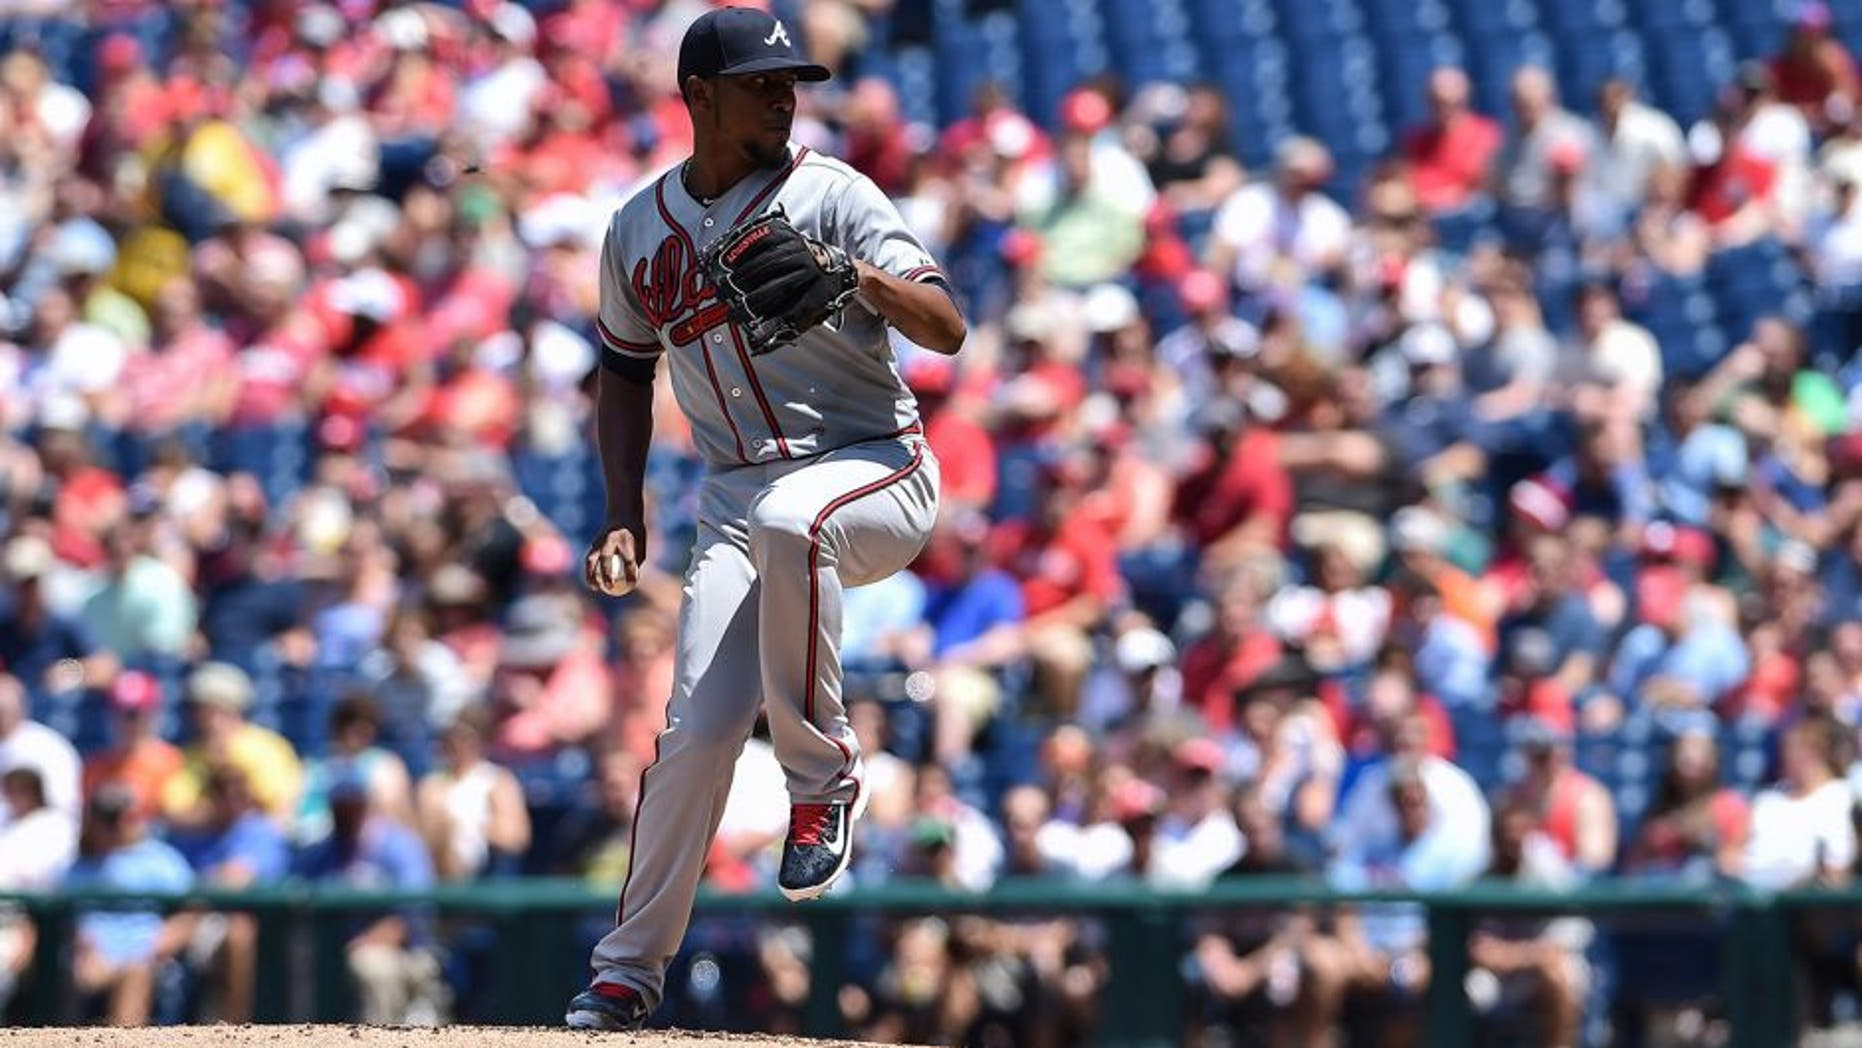 Aug 2, 2015; Philadelphia, PA, USA; Atlanta Braves starting pitcher Julio Teheran (49) pitches during the first inning of game against the Philadelphia Phillies at Citizens Bank Park. Mandatory Credit: John Geliebter-USA TODAY Sports